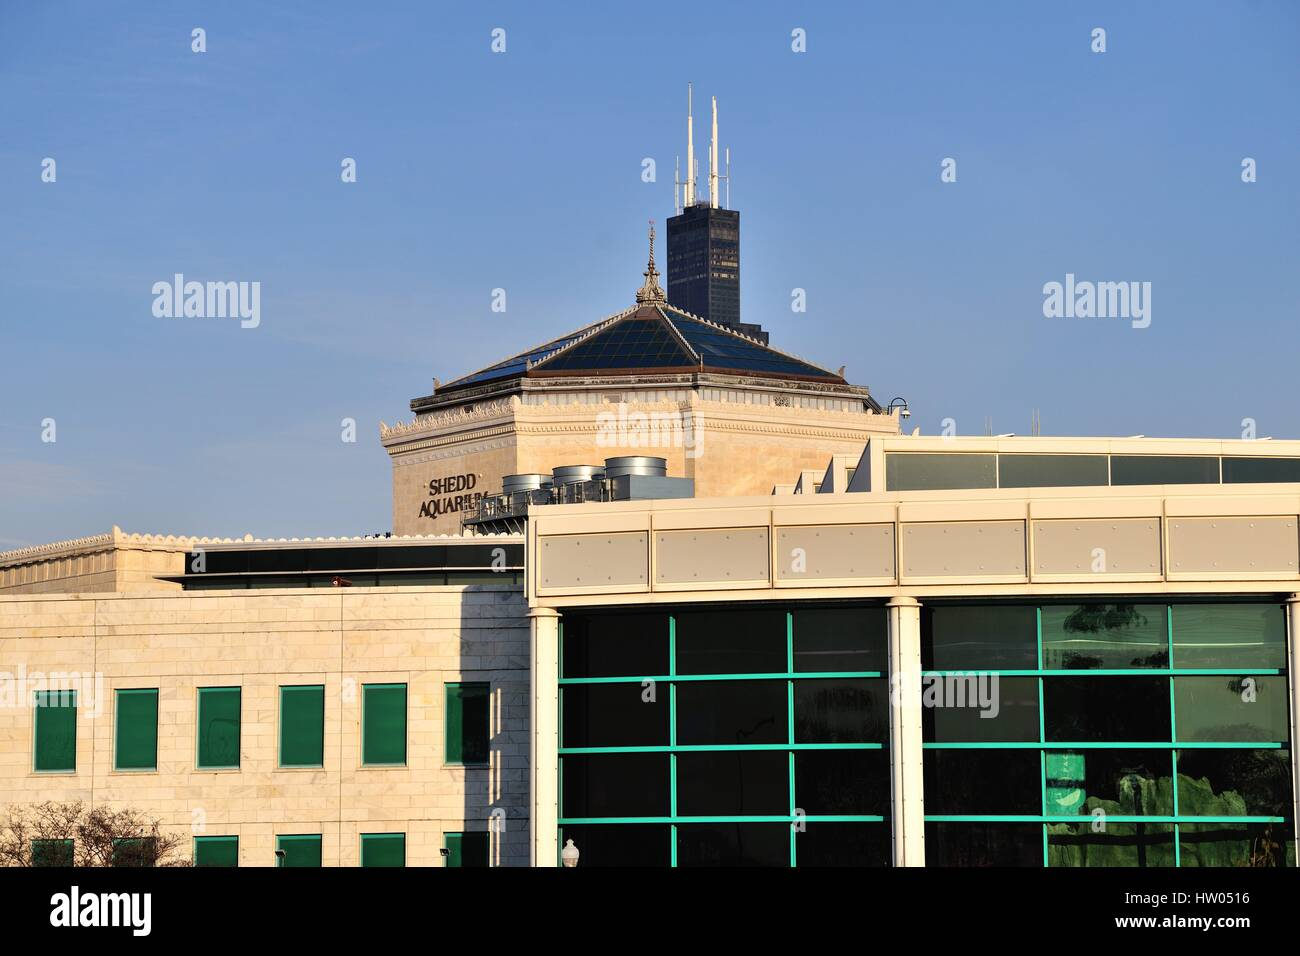 Chicago's Willis Tower (formerly Sears Tower) almost appears to be rising from the roof of the Shedd Aquarium. - Stock Image